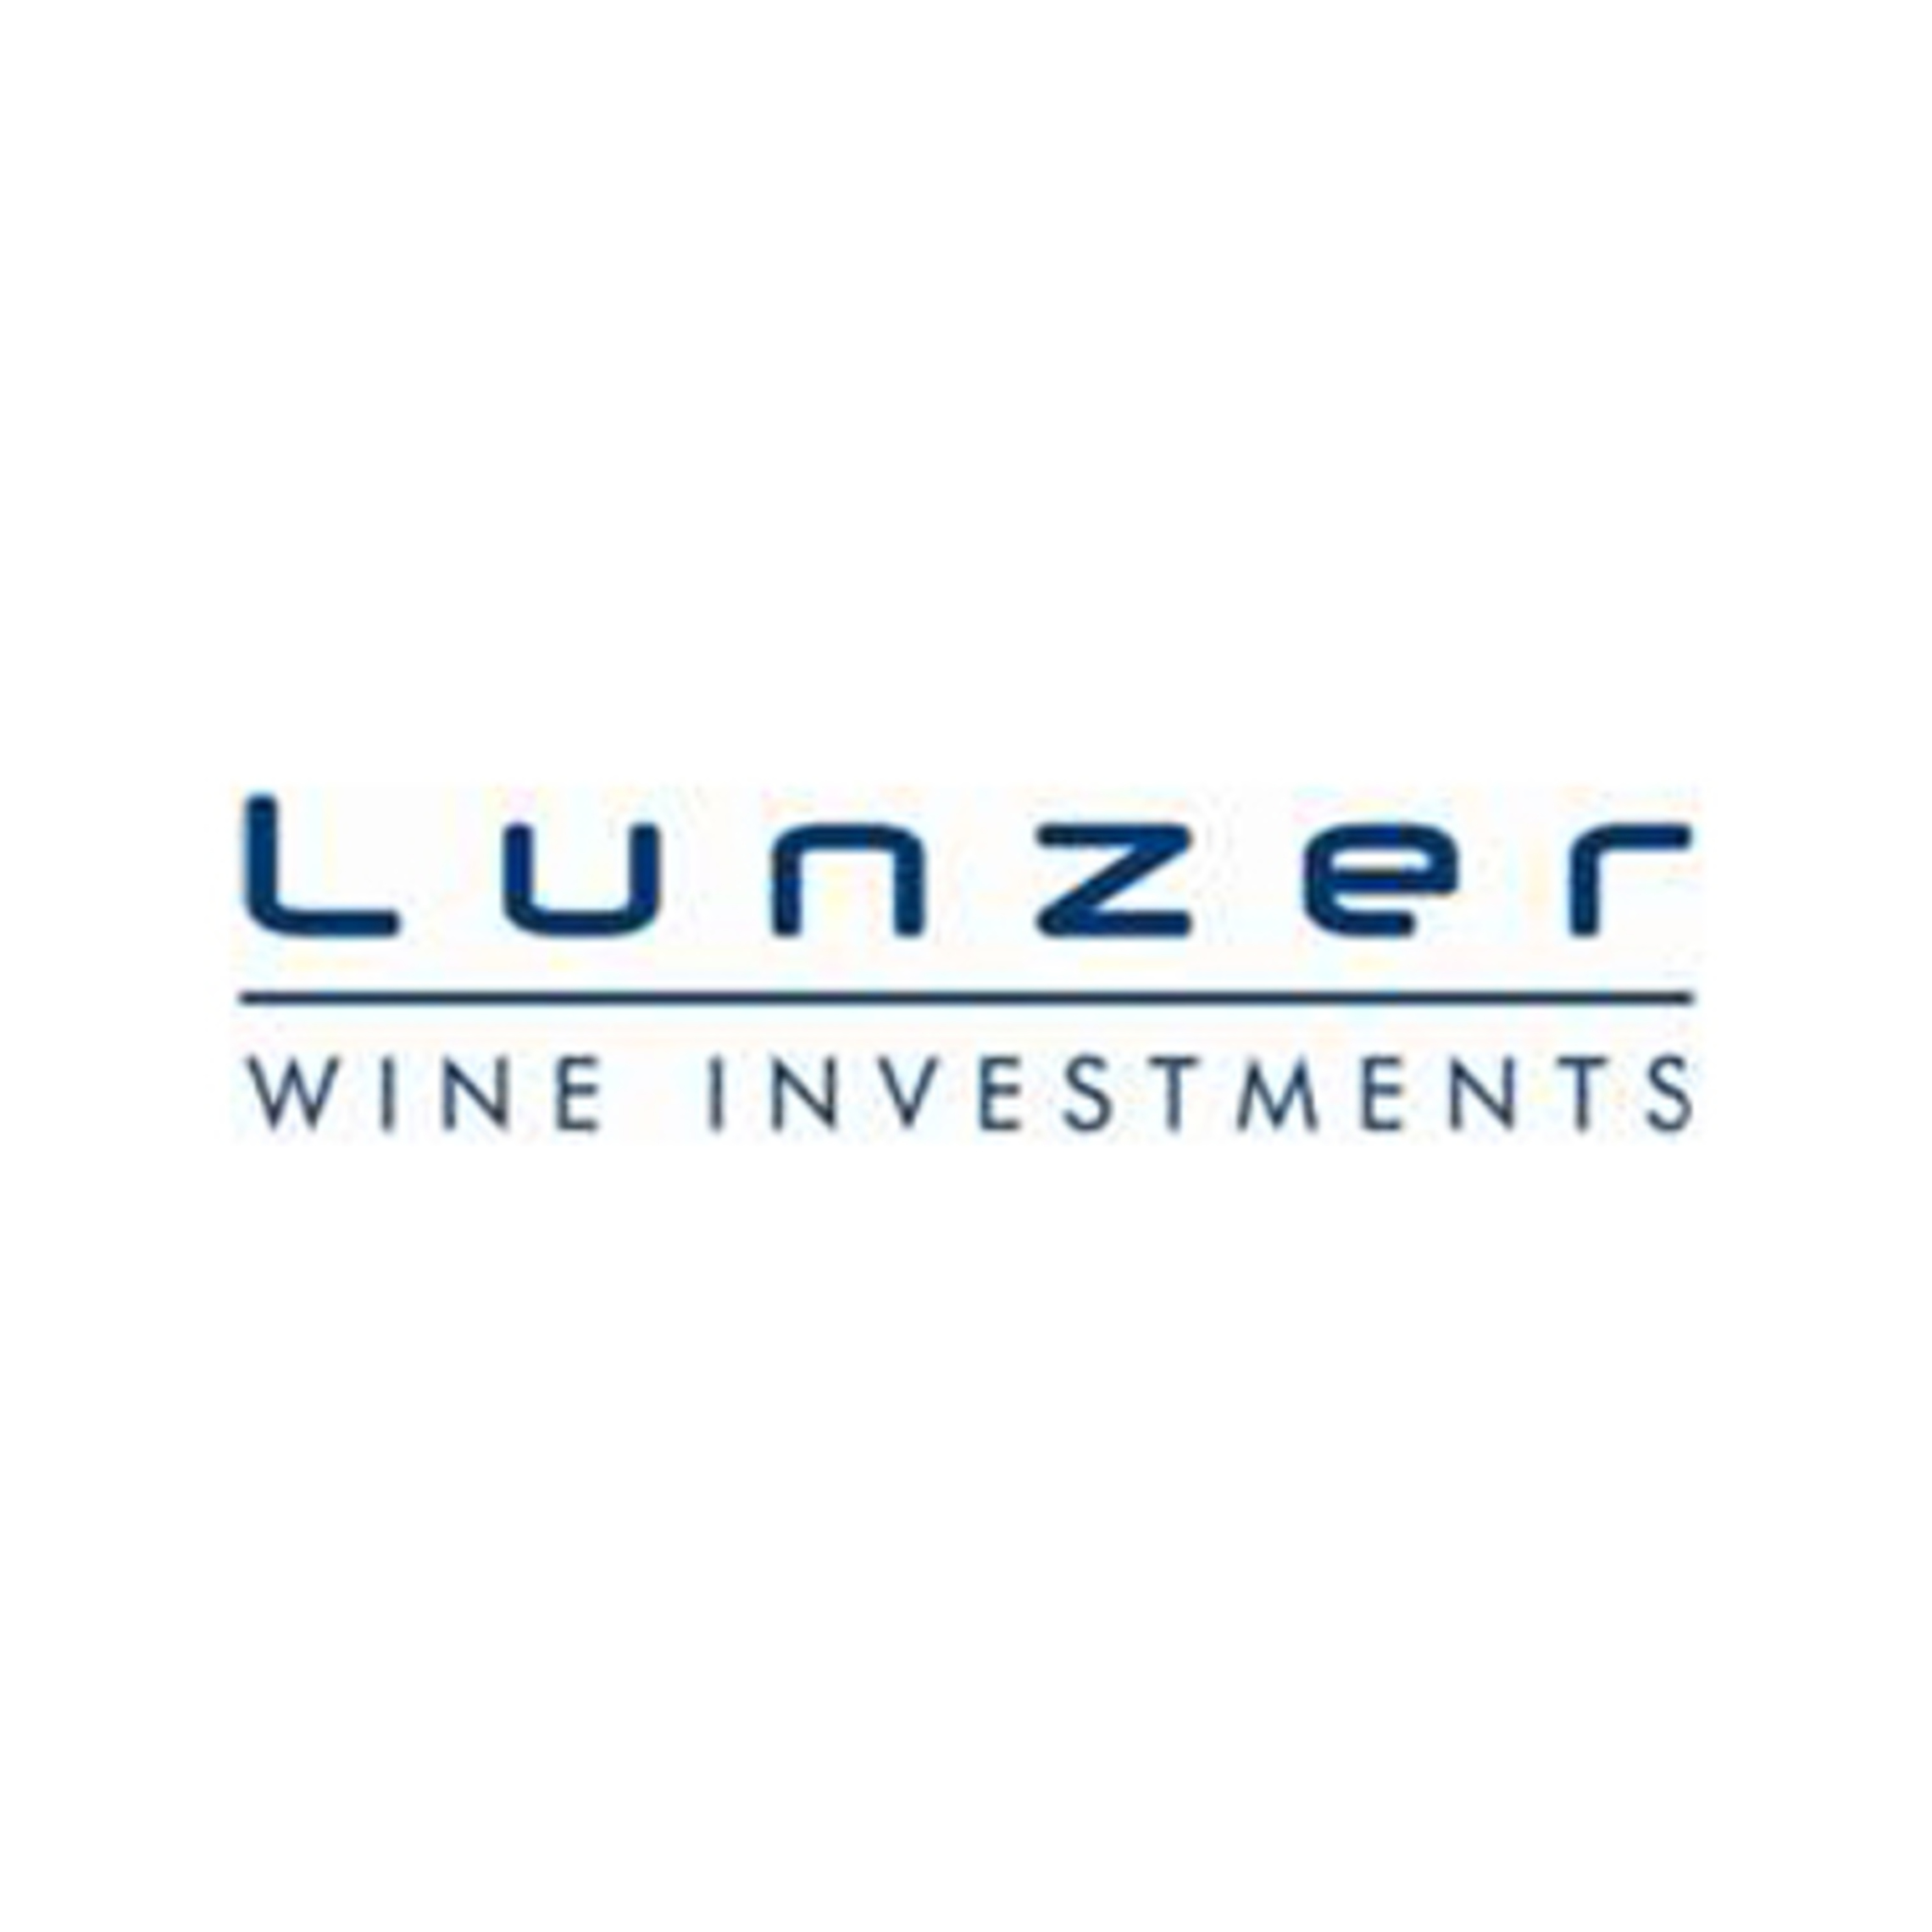 lunzer wine investments- company logo